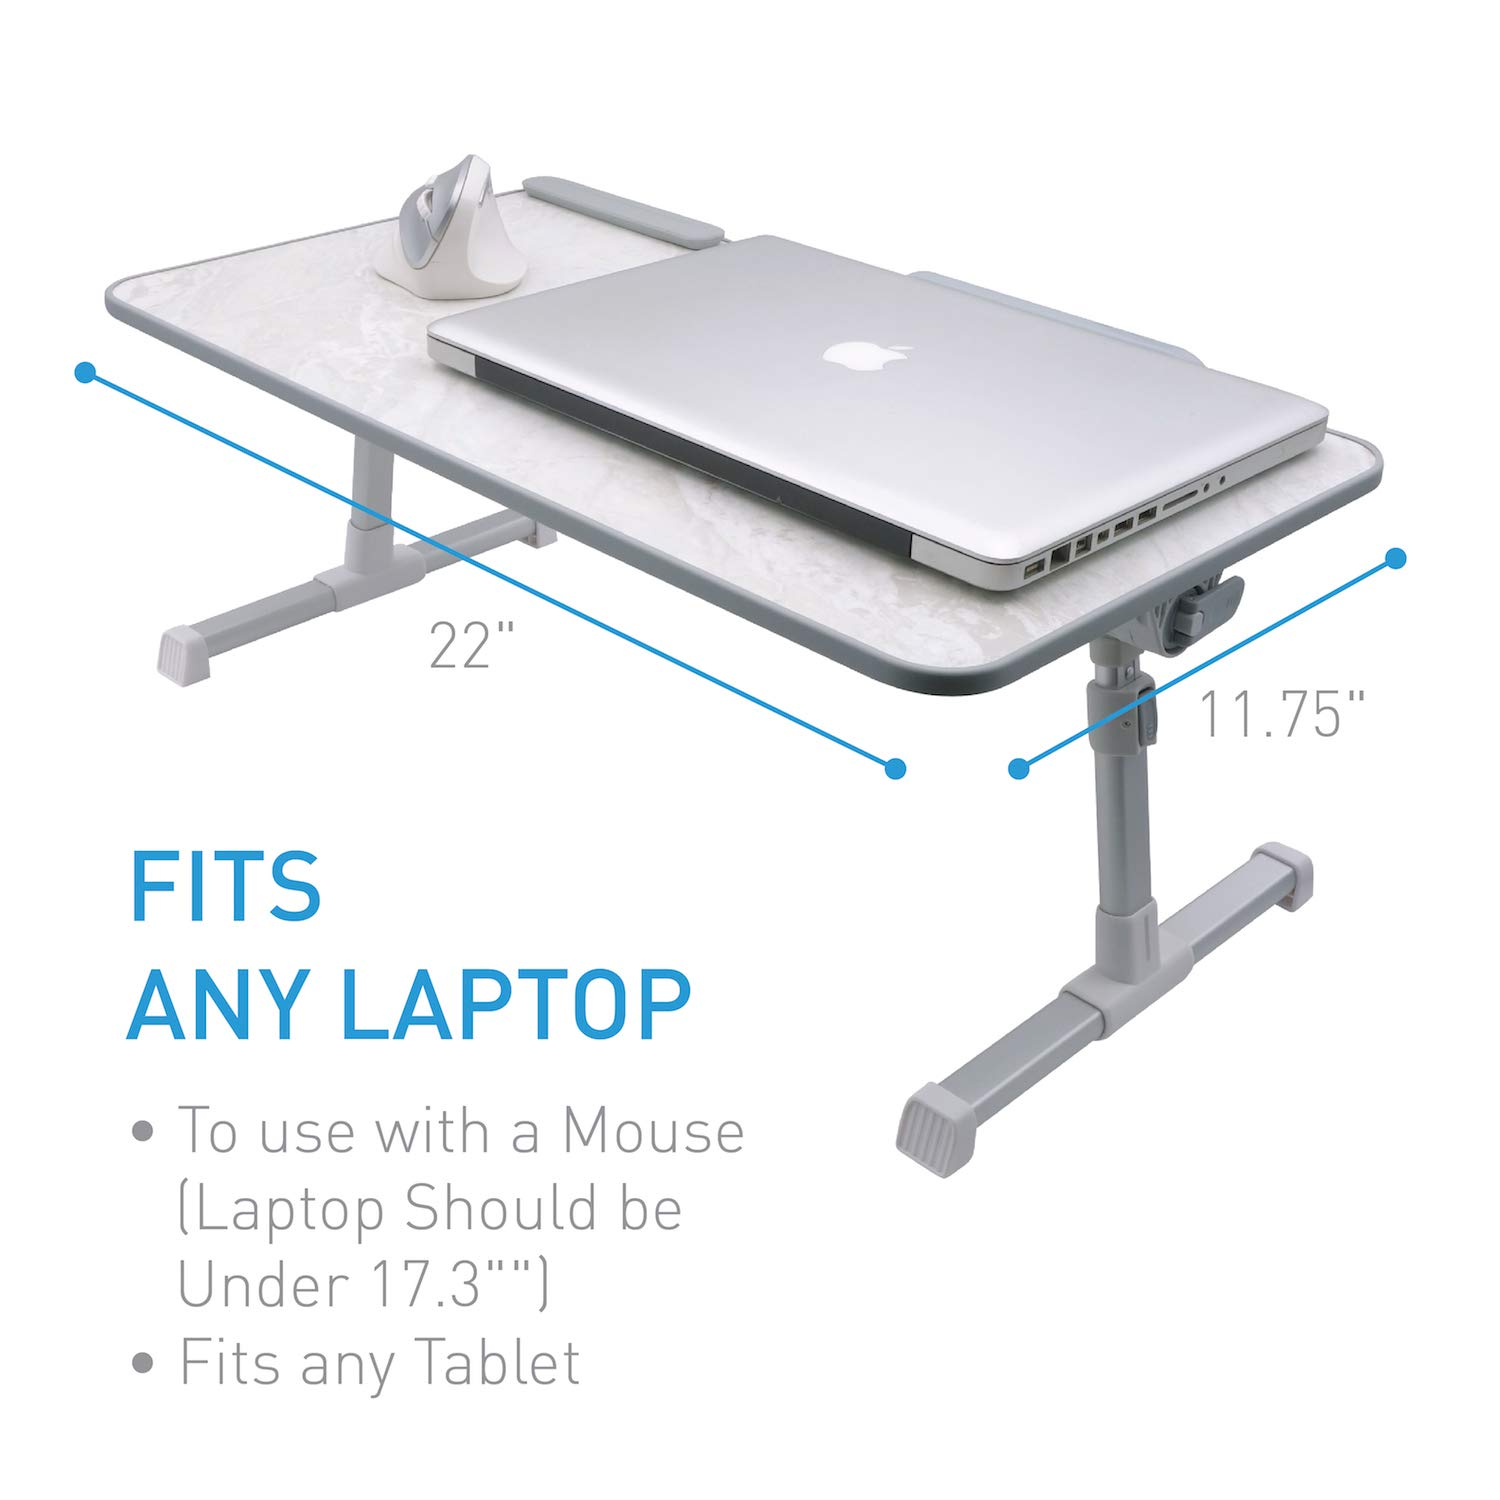 Macally Portable Laptop Table for Bed, [Large Size] Foldable & Height Adjustable Laptop Stand for Table - Sofa, Couch, Recliner - Folding Breakfast Tray Table with Legs, Notebook Lap Holder (Marble) by Macally (Image #3)